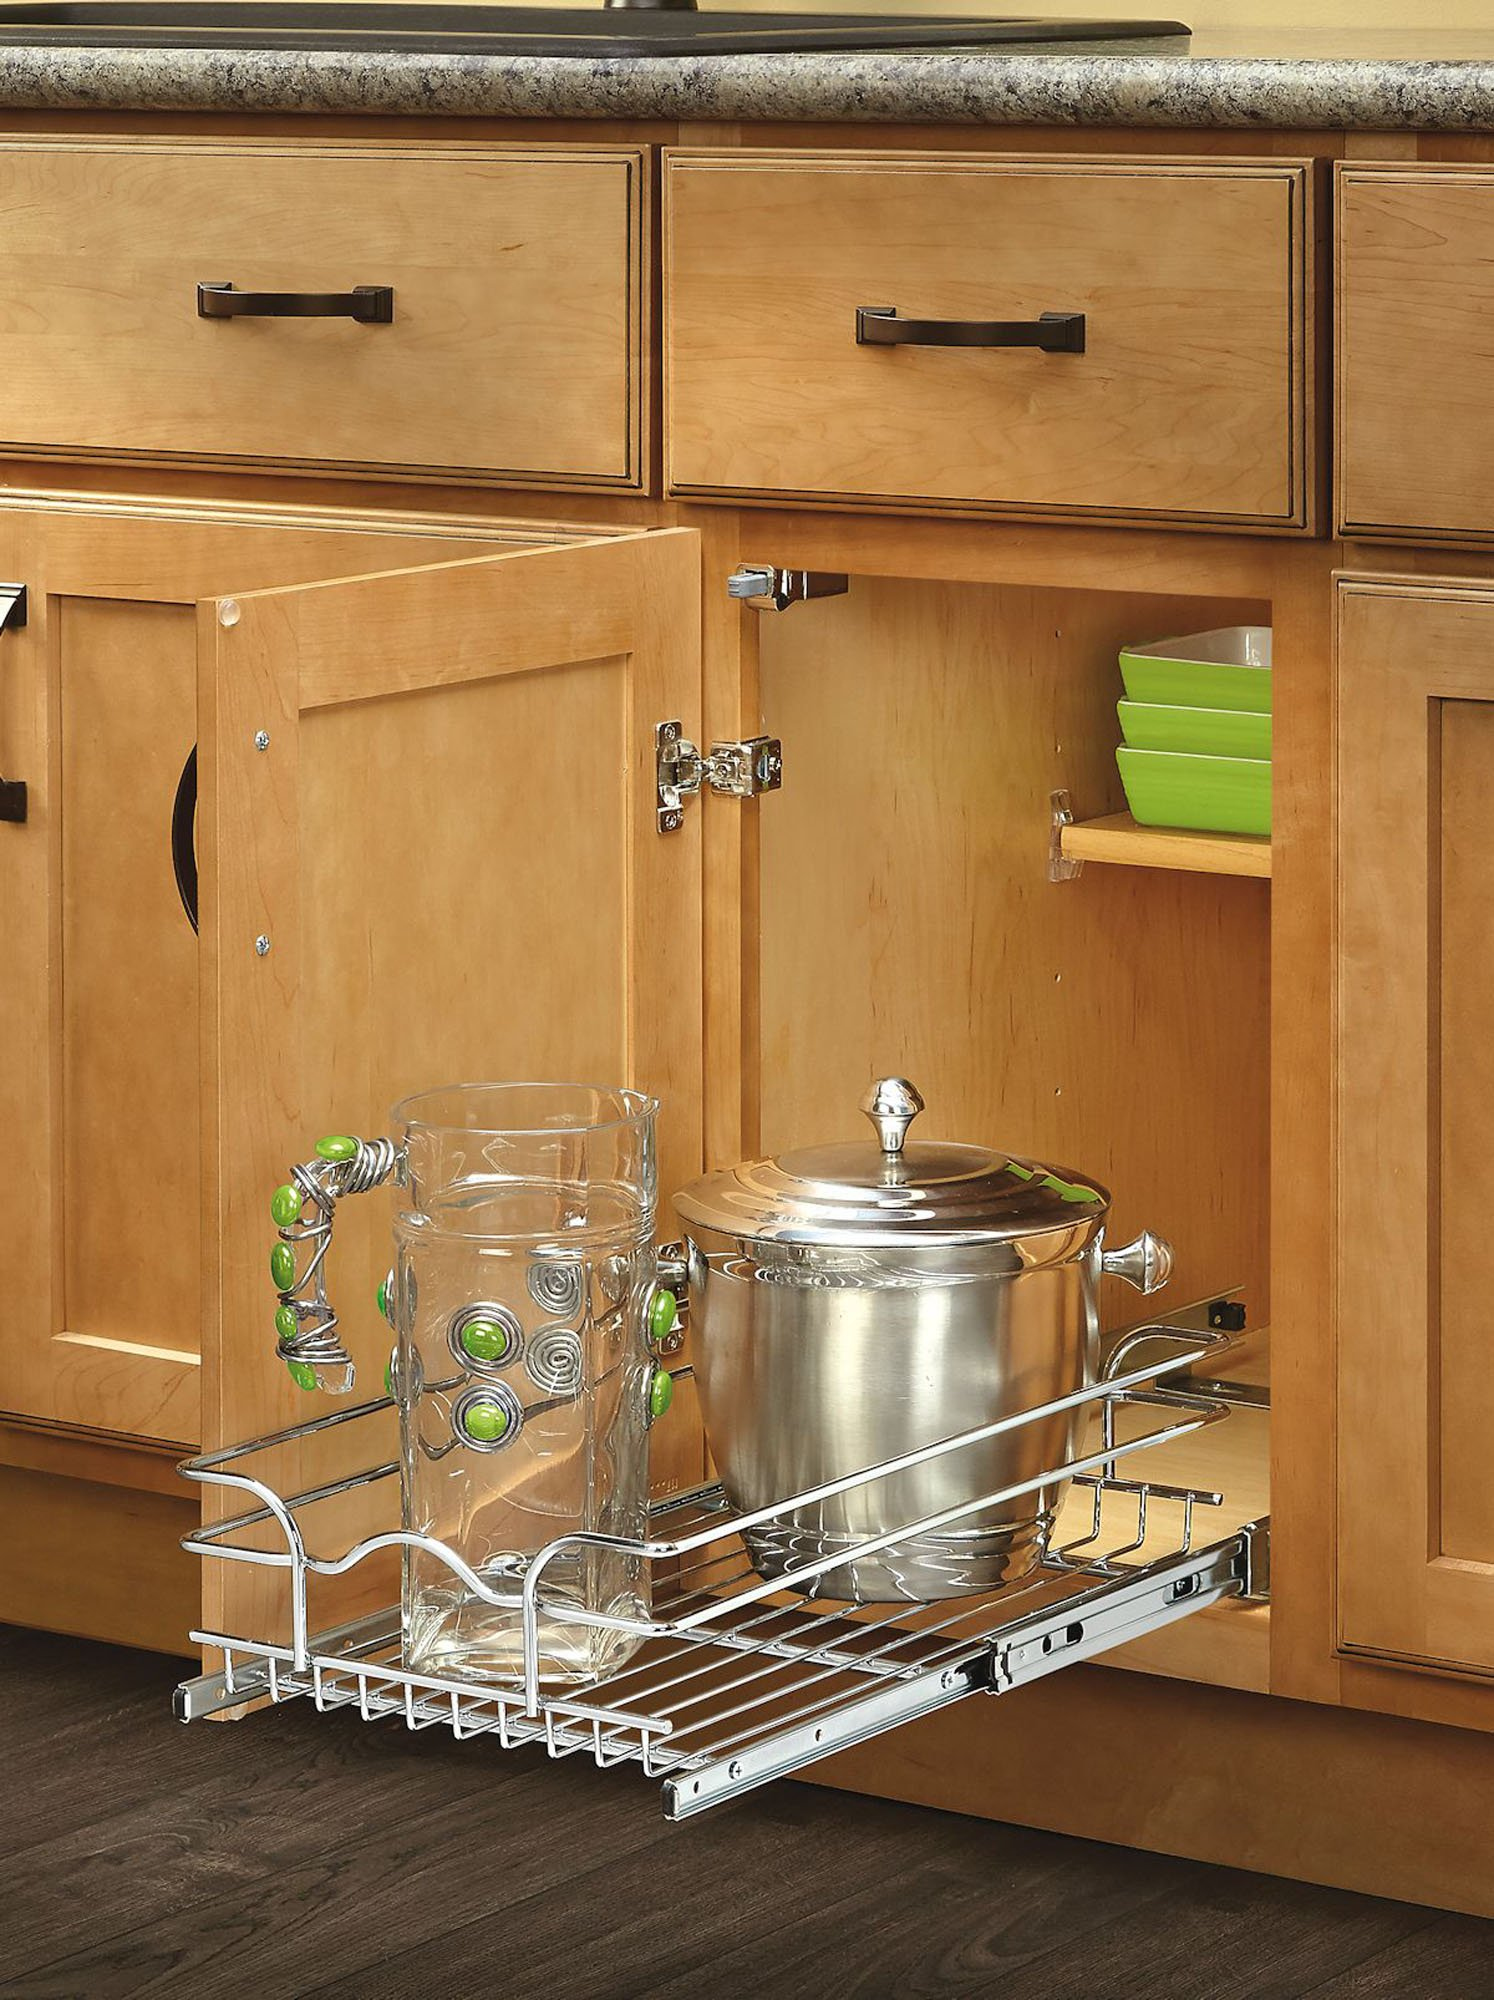 rev a shelf 5wb1 0918 cr 9 in w x 18 in d base cabinet pull out chrome ebay. Black Bedroom Furniture Sets. Home Design Ideas